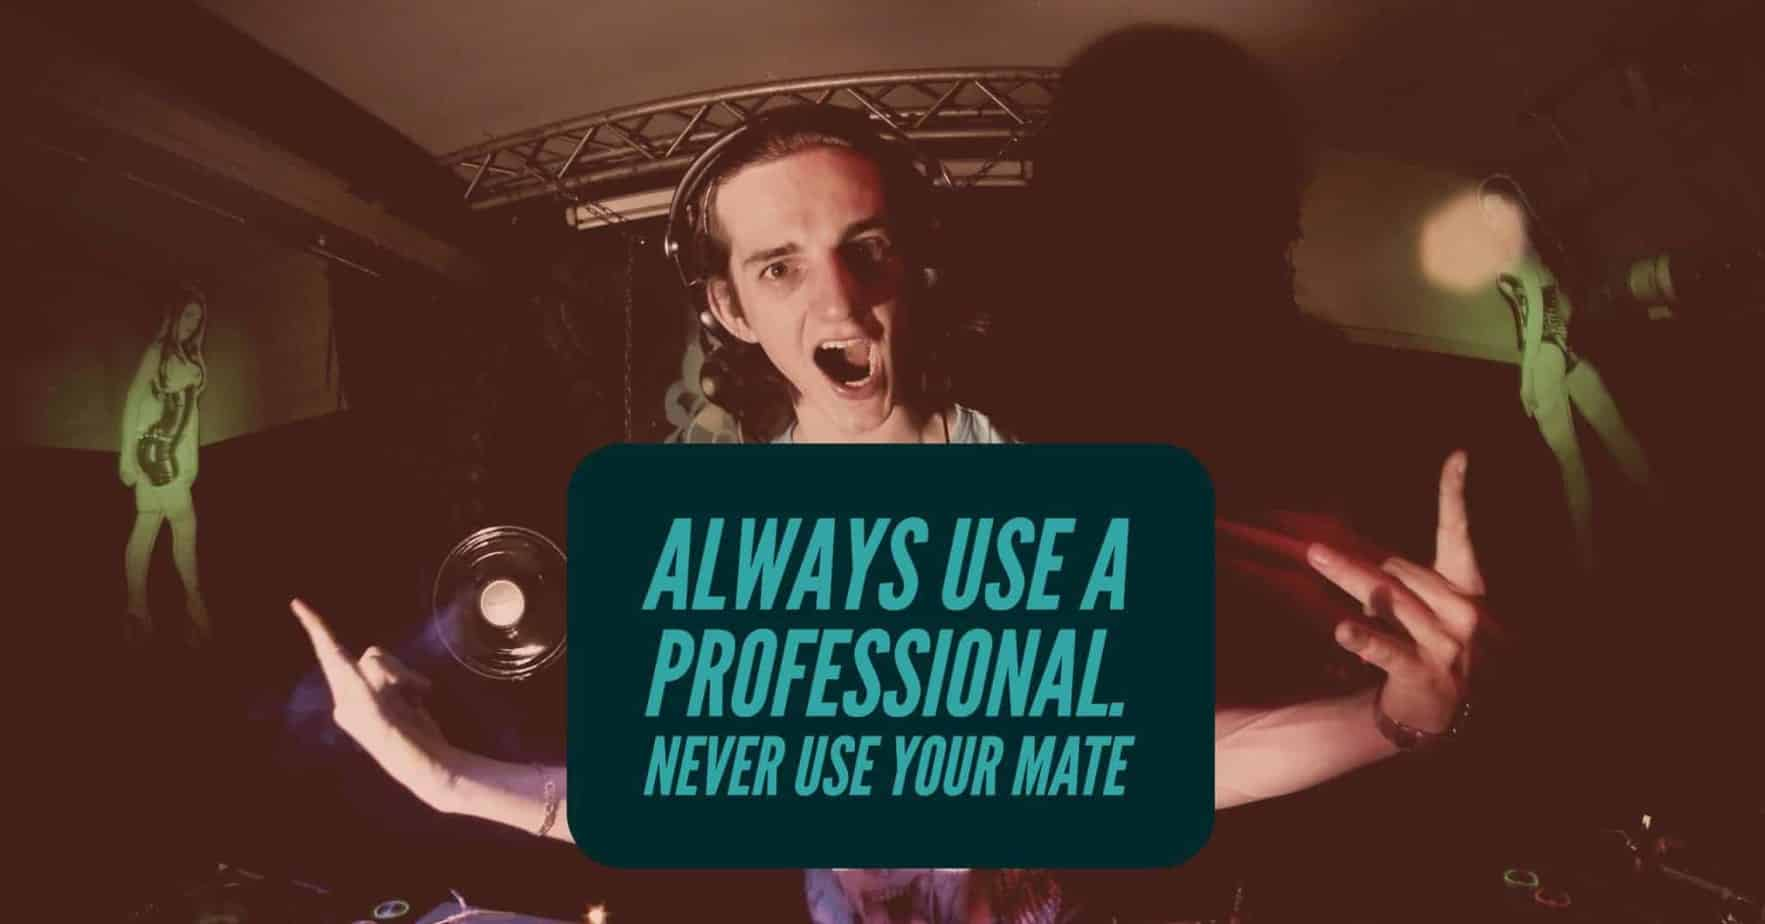 5 Reasons To Use A Professional DJ